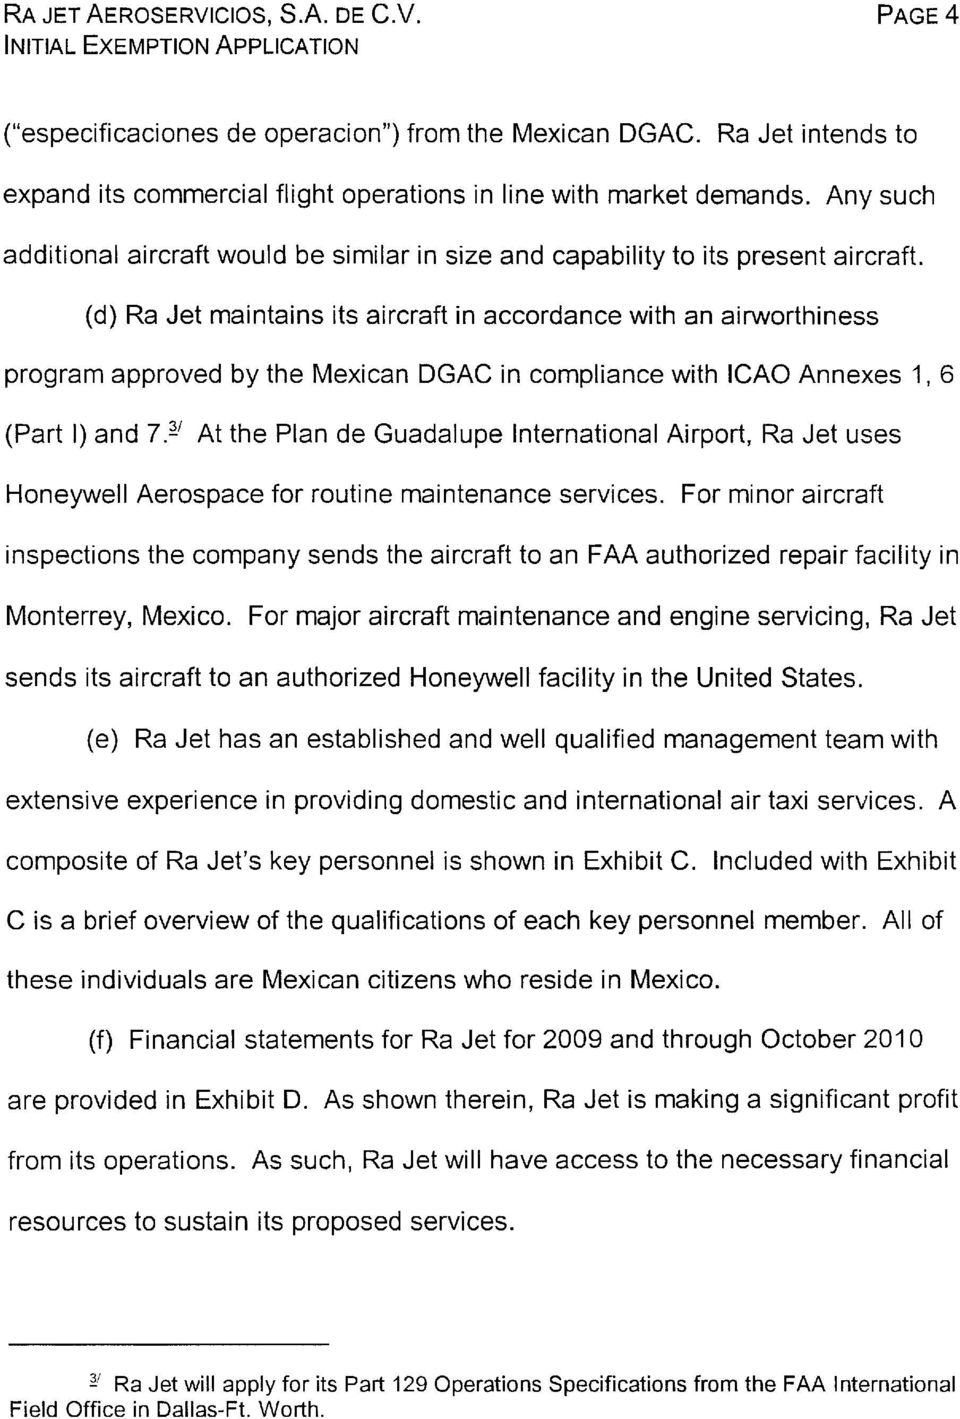 (d) Ra Jet maintains its aircraft in accordance with an airworthiness program approved by the Mexican DGAC in compliance with ICAO Annexes 1, 6 (Part I) and 7.